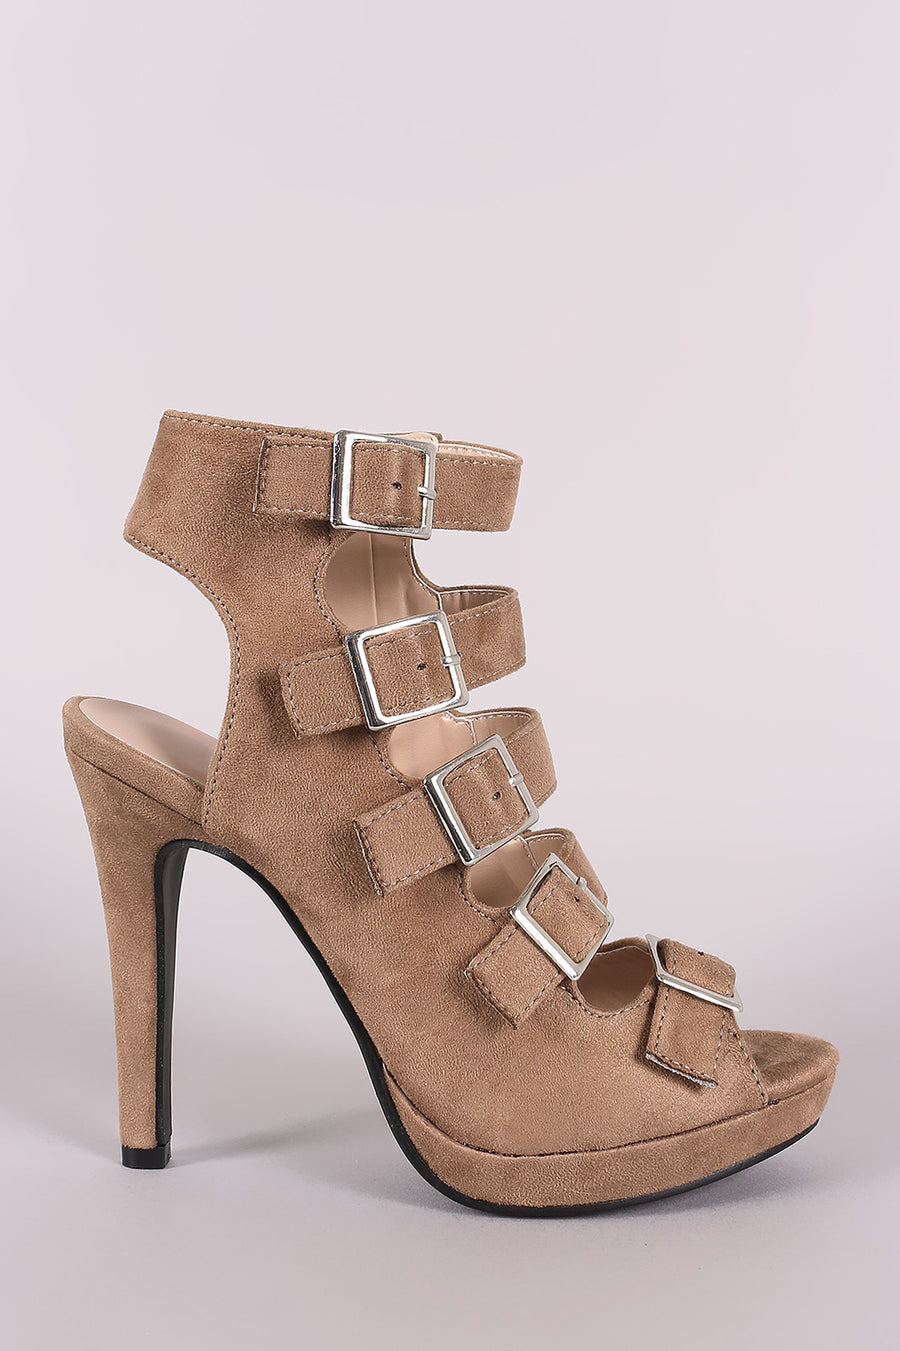 Strappy Vegan Suede Square Buckle Open Toe Platform Stiletto Heel